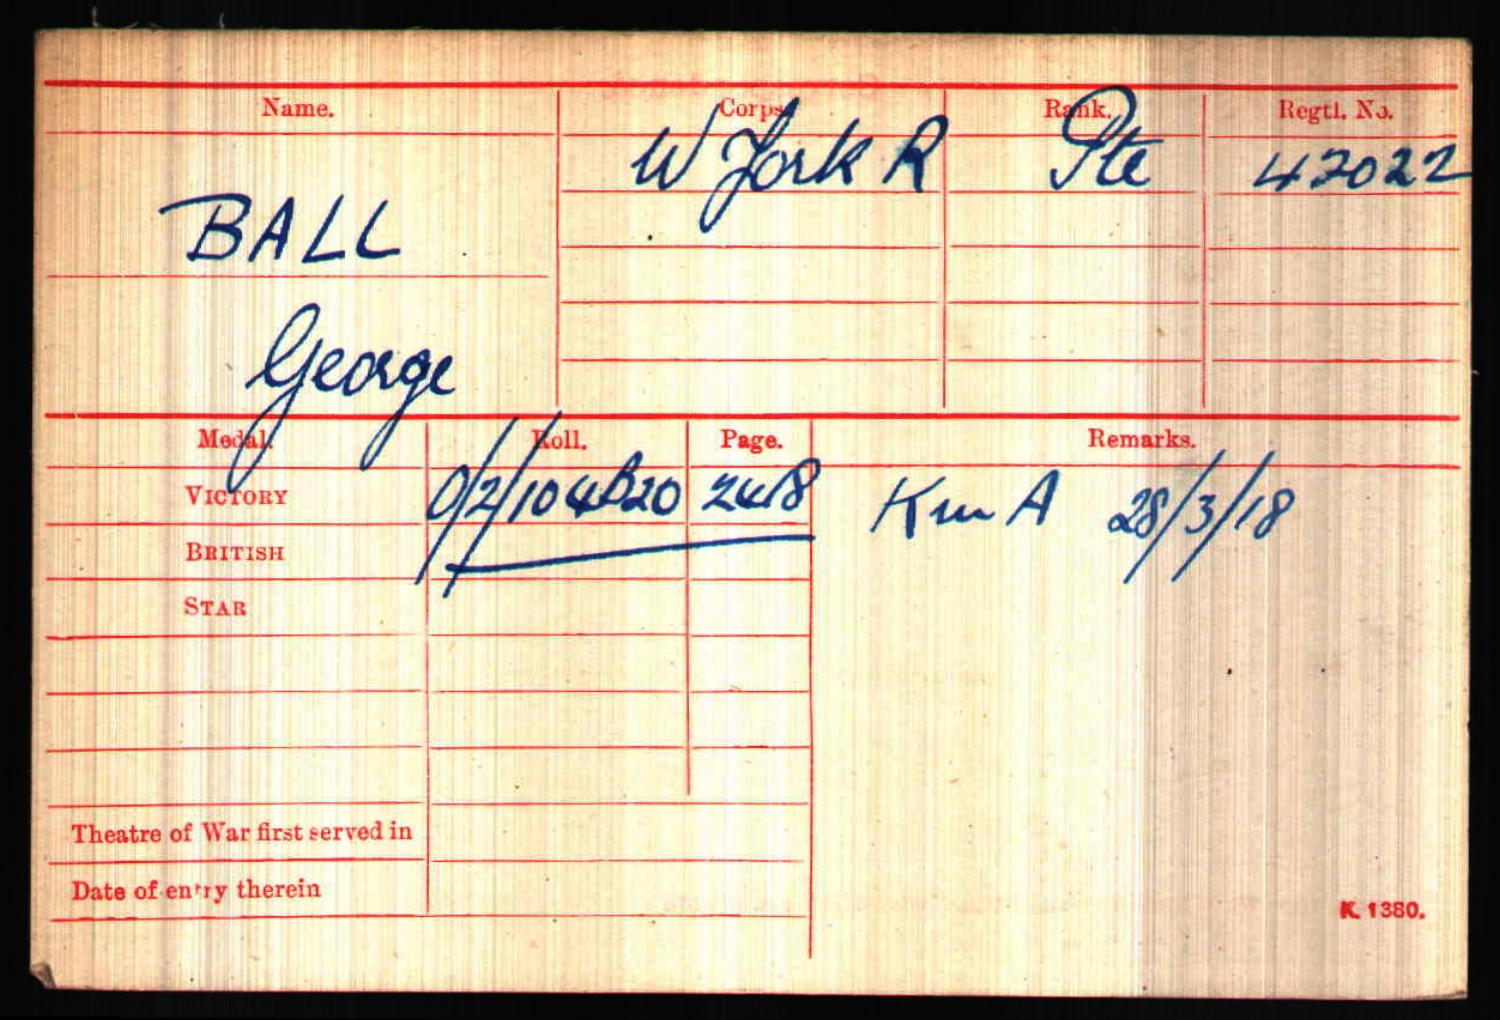 British Army World War I Medal Roll Index Card, 1914-1920, for 42022 Private George Michael Ball